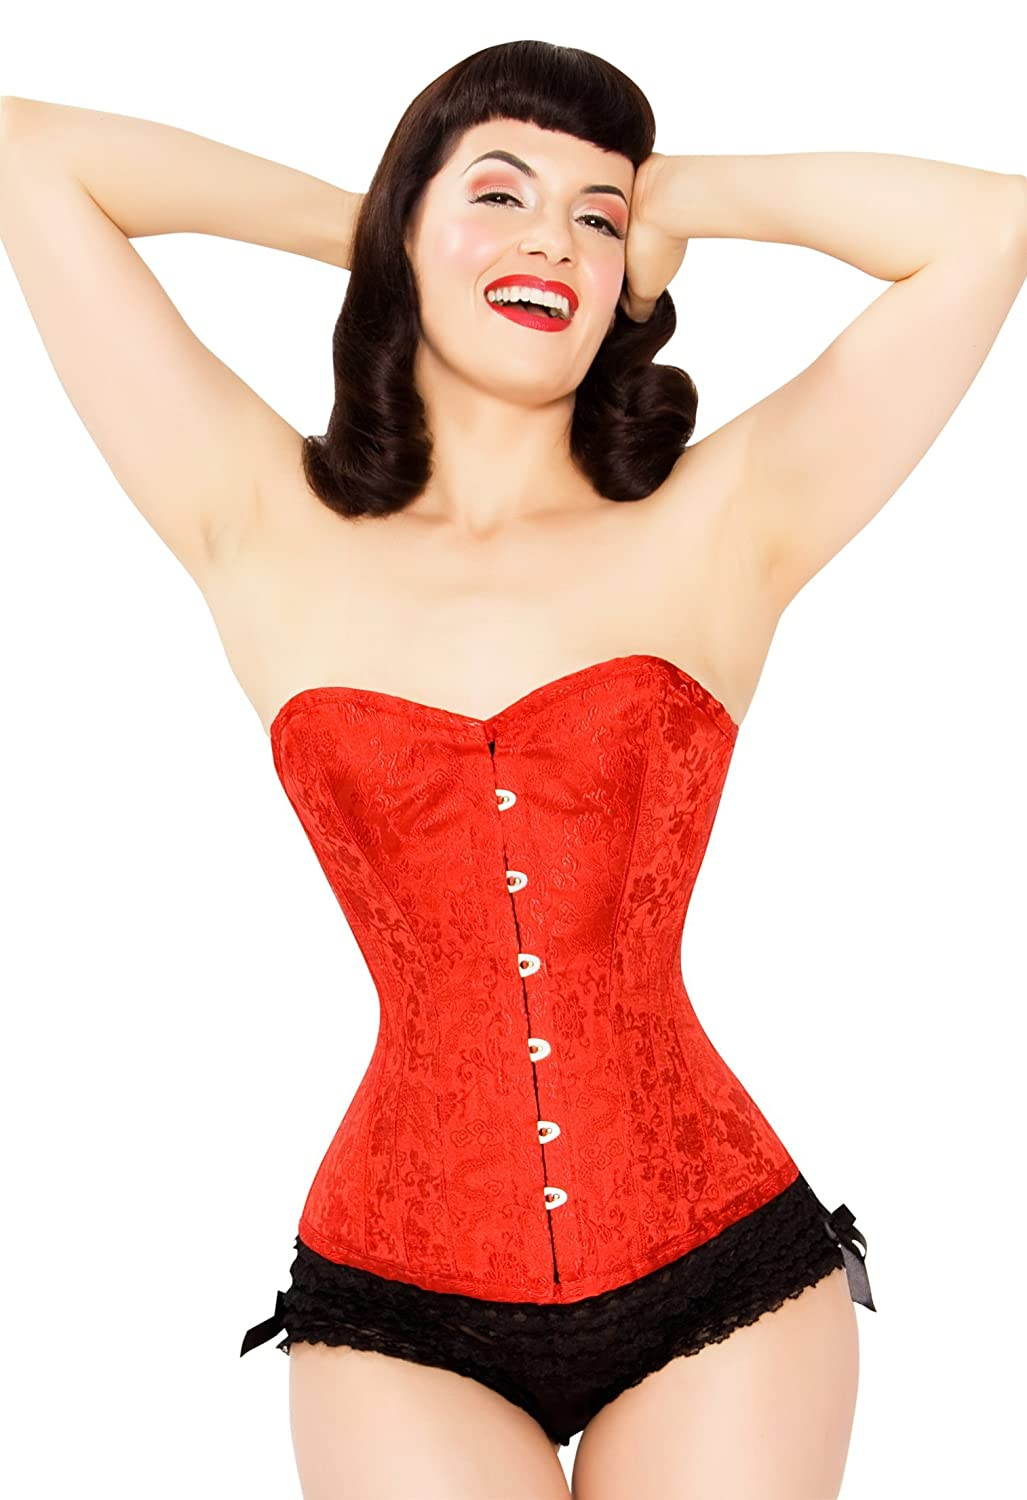 Playgirl Full Steel Boned Overbust Corset Shaper In A Hot Red Floral Jacquard